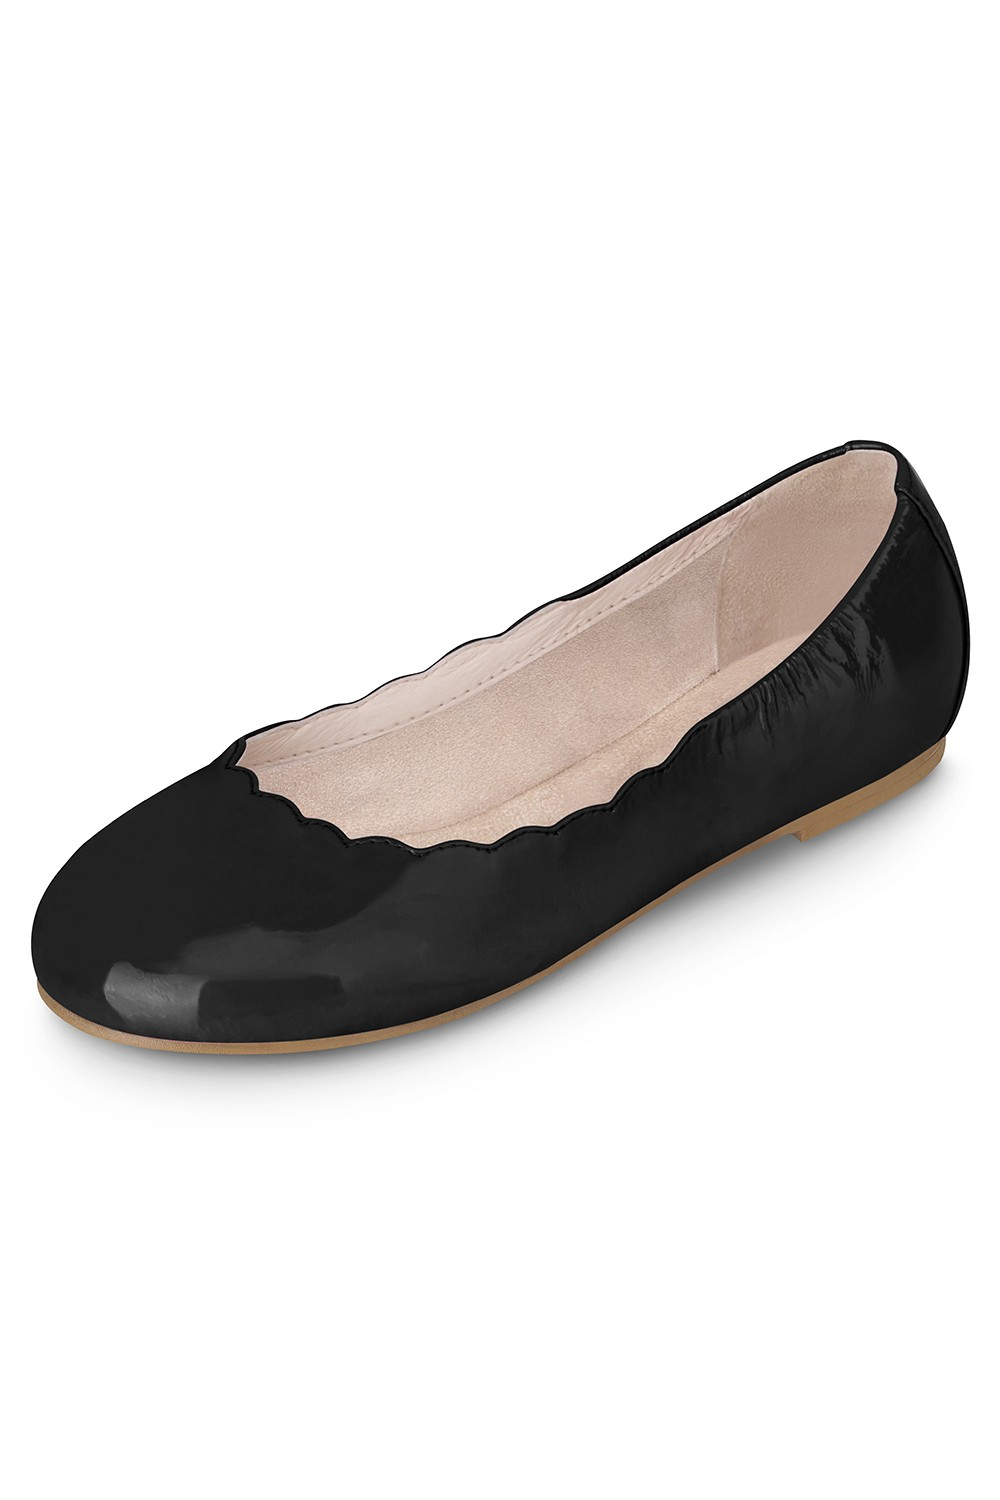 Scalloped Ballerina - Niña Girls Fashion Shoes